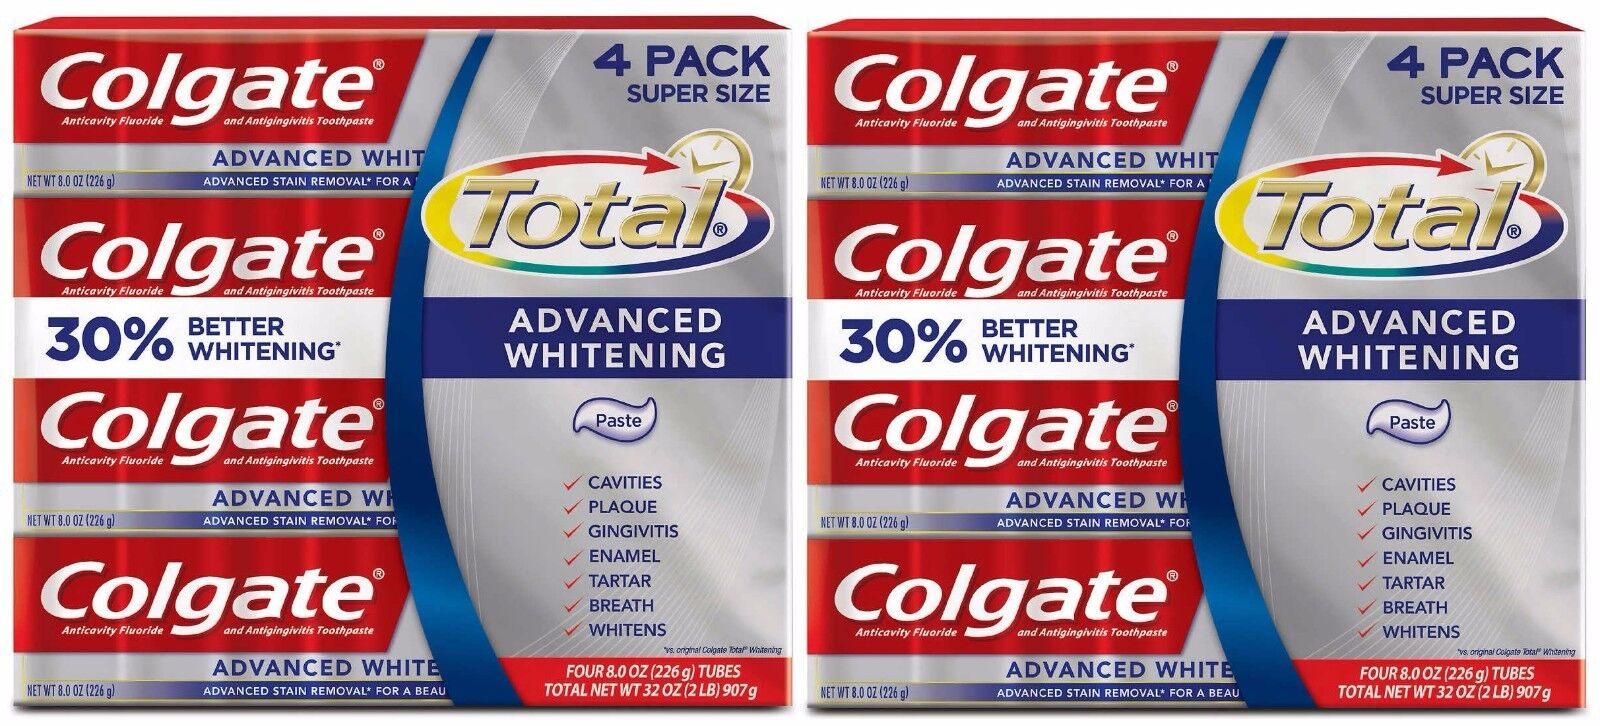 Colgate Mattress Total Advanced Whitening Toothpaste 8 Pa...